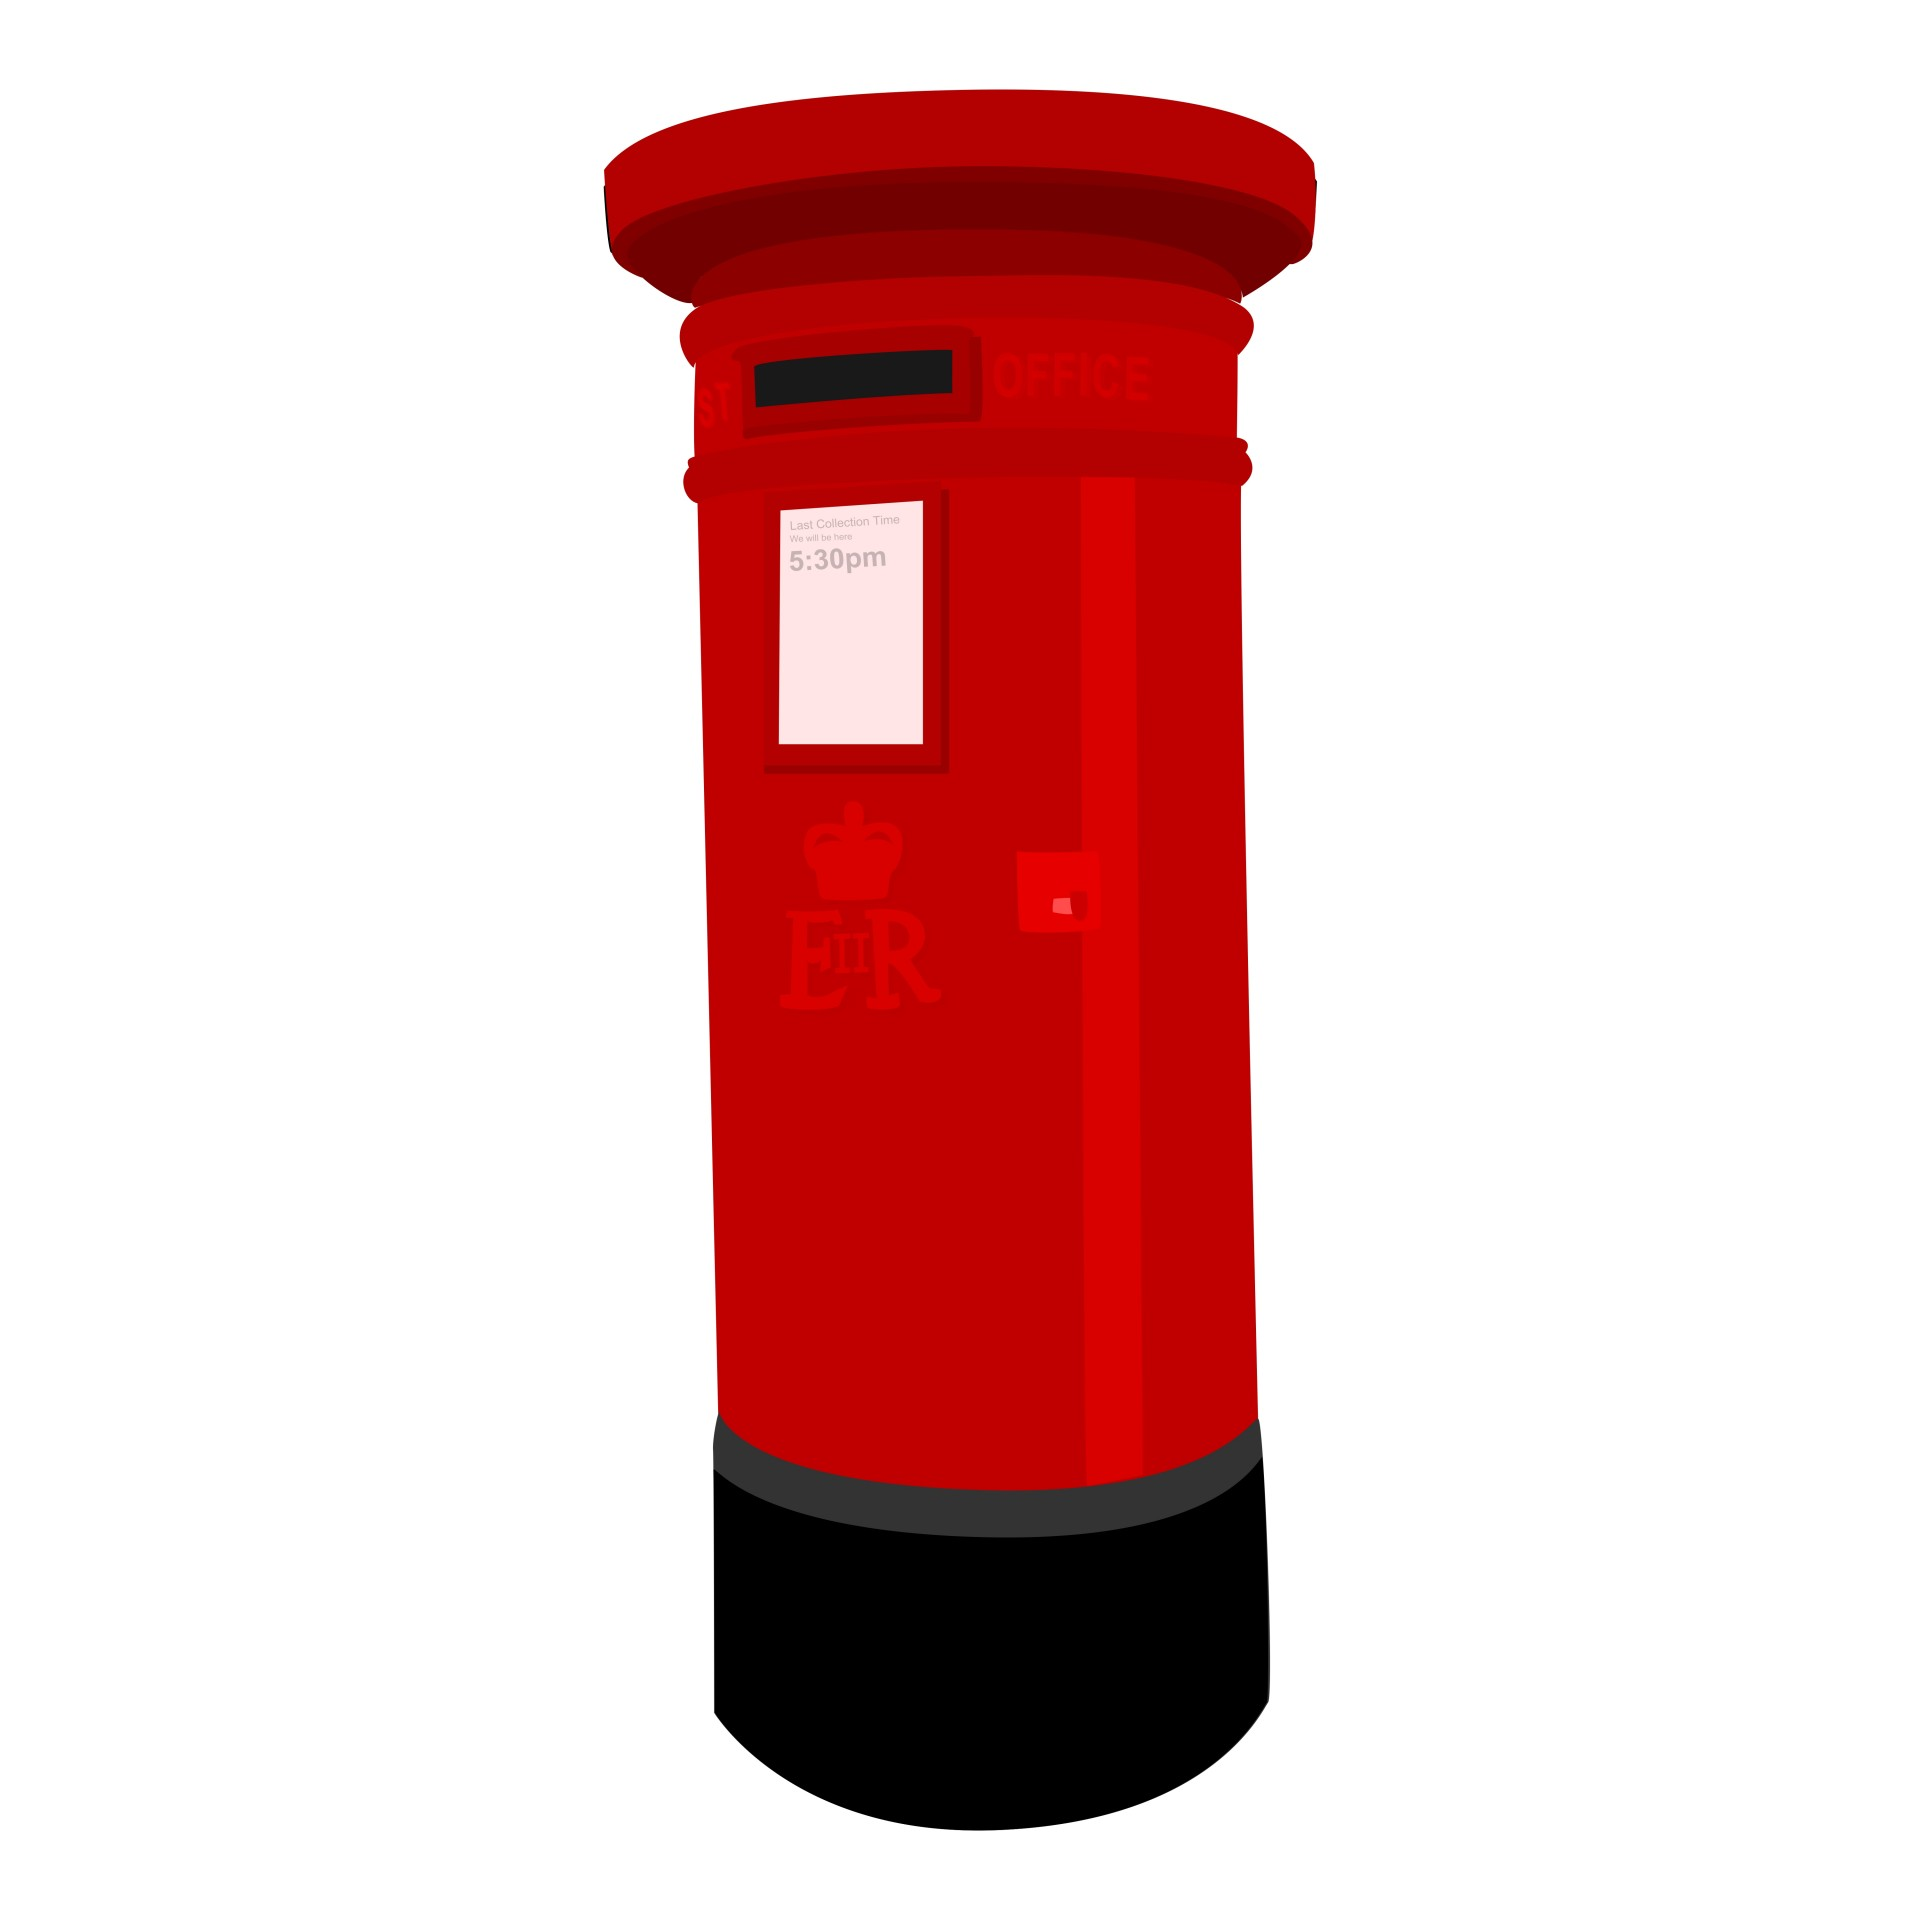 Red post box clipart.